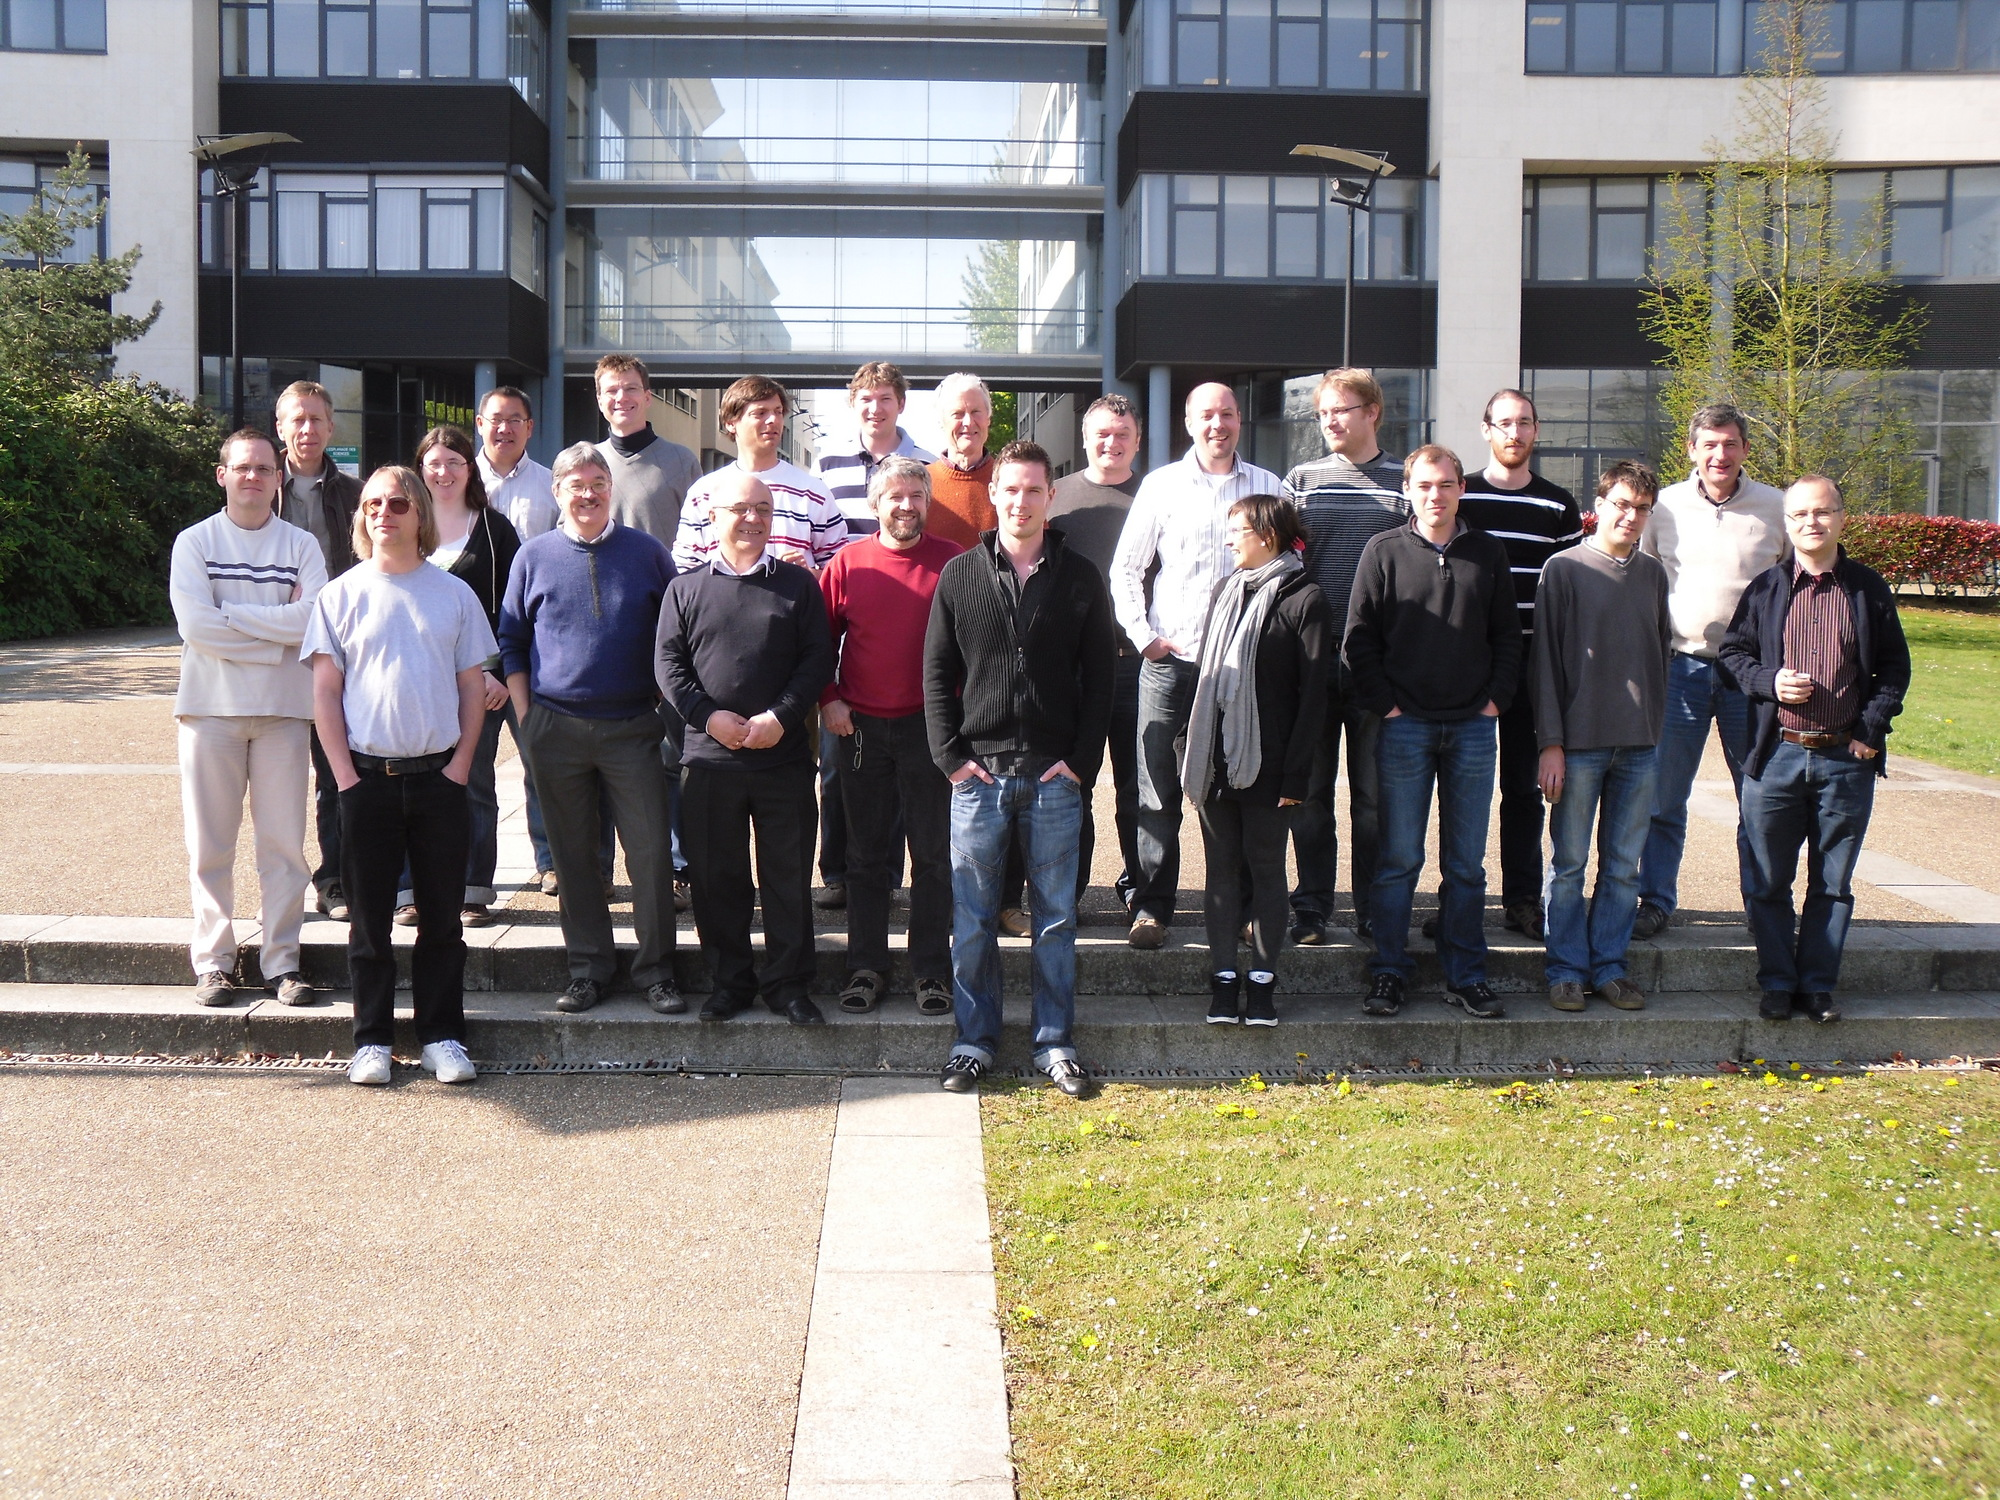 Picture taken at our collaboration meeting at LPC Caen, 23. April 2010